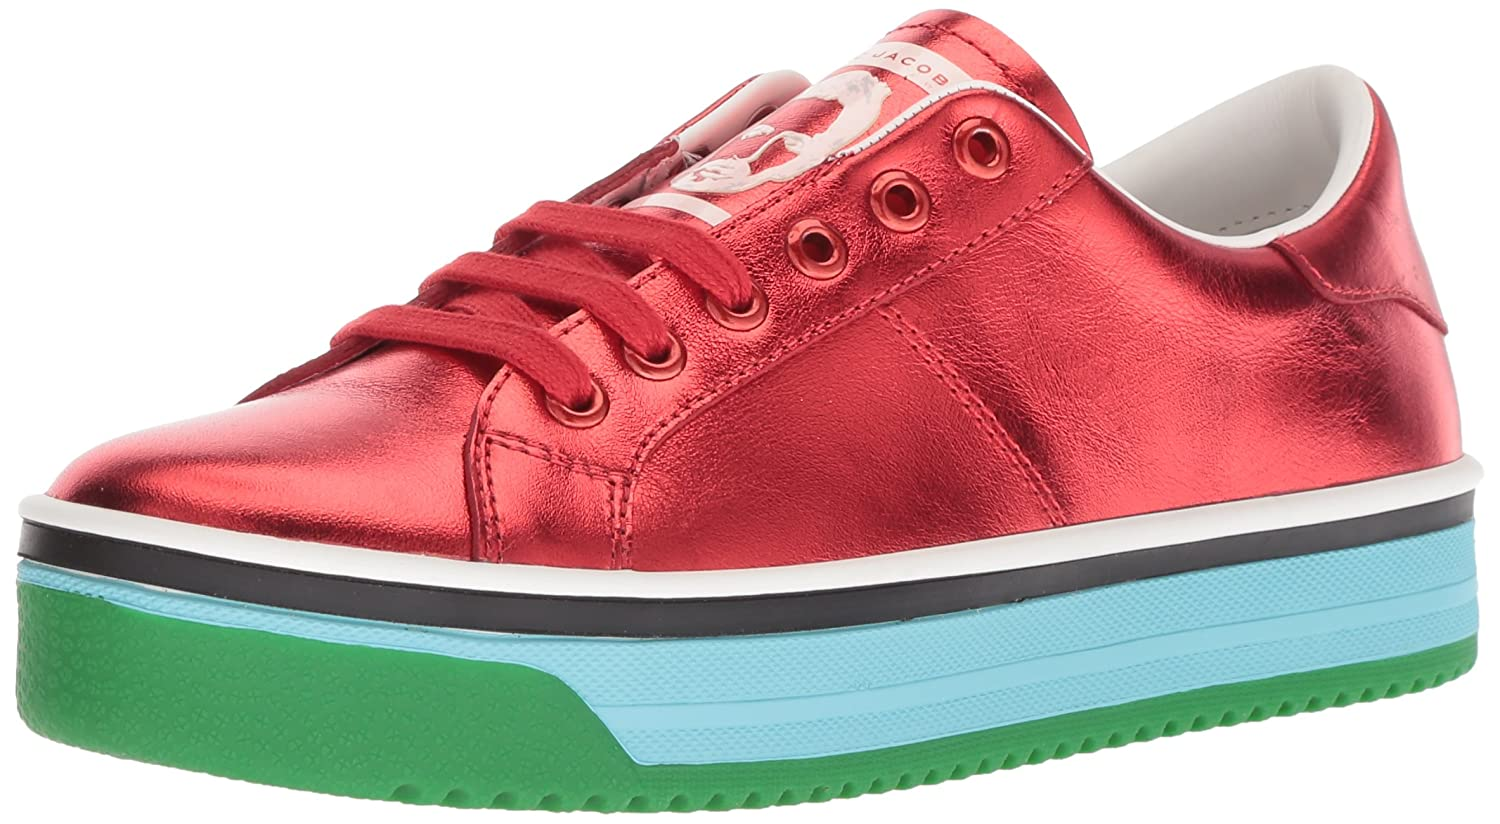 Marc Jacobs Women's Empire Multi Color Sole Sneaker B0781Z7TPS 36 M EU (6 US)|Red/Multi